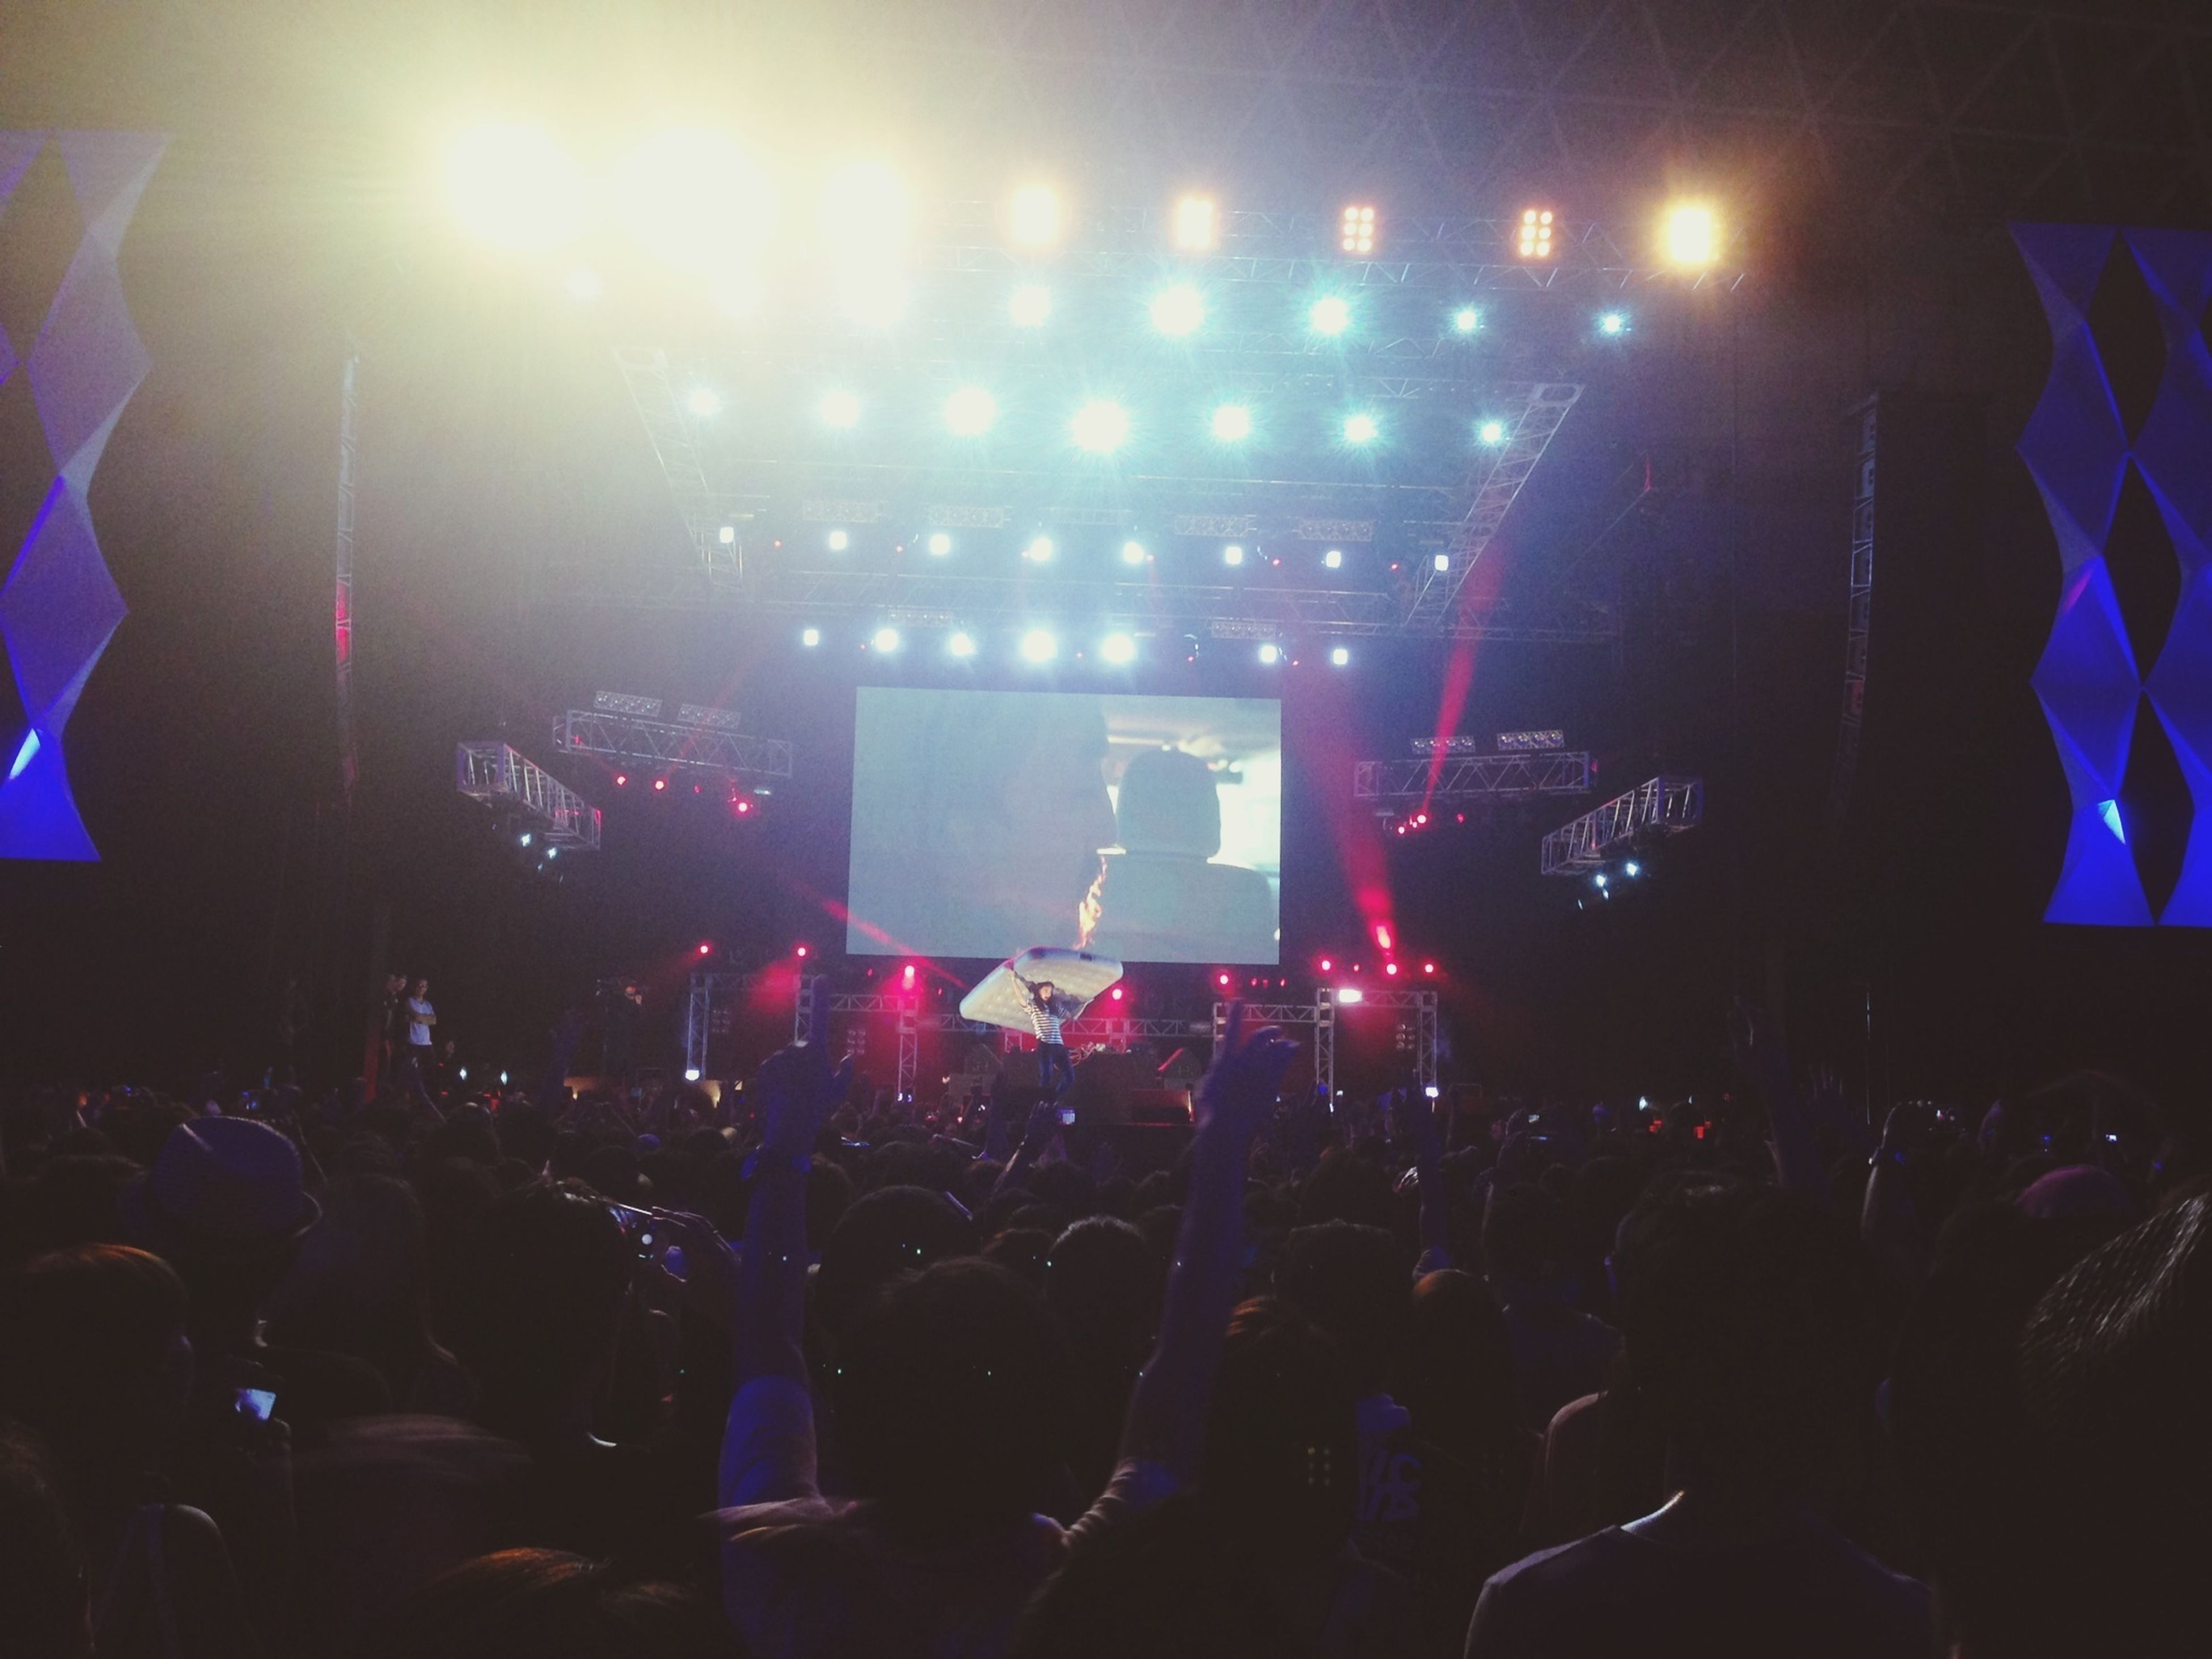 large group of people, illuminated, crowd, lifestyles, music, night, nightlife, men, person, arts culture and entertainment, indoors, concert, leisure activity, enjoyment, music festival, performance, stage - performance space, event